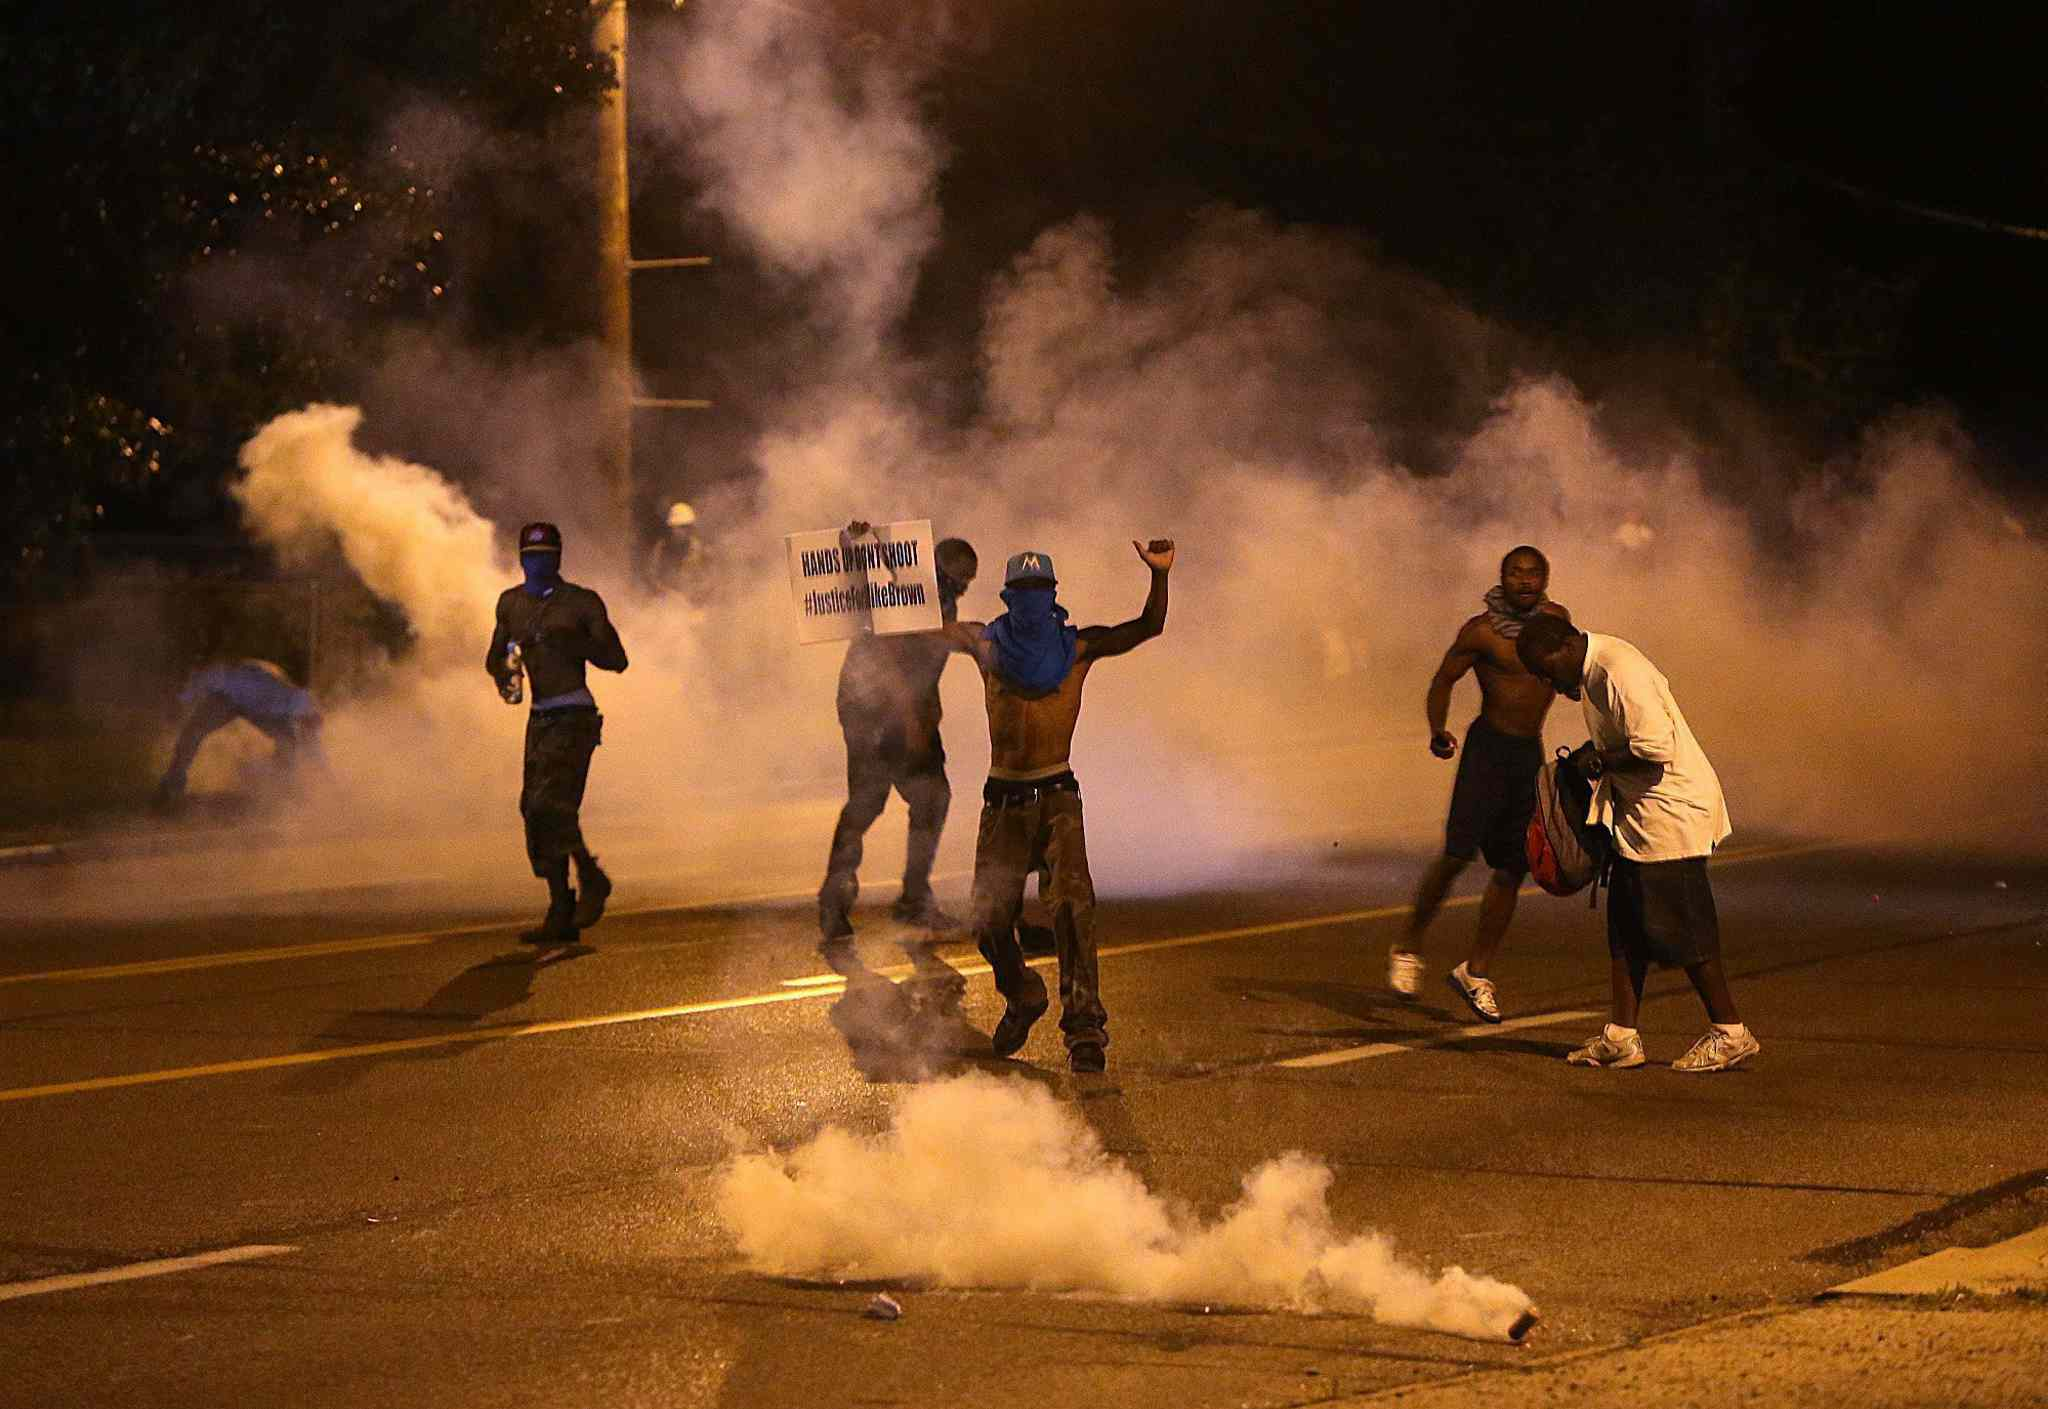 People protest as tear gas canisters detonate around them Wednesday.